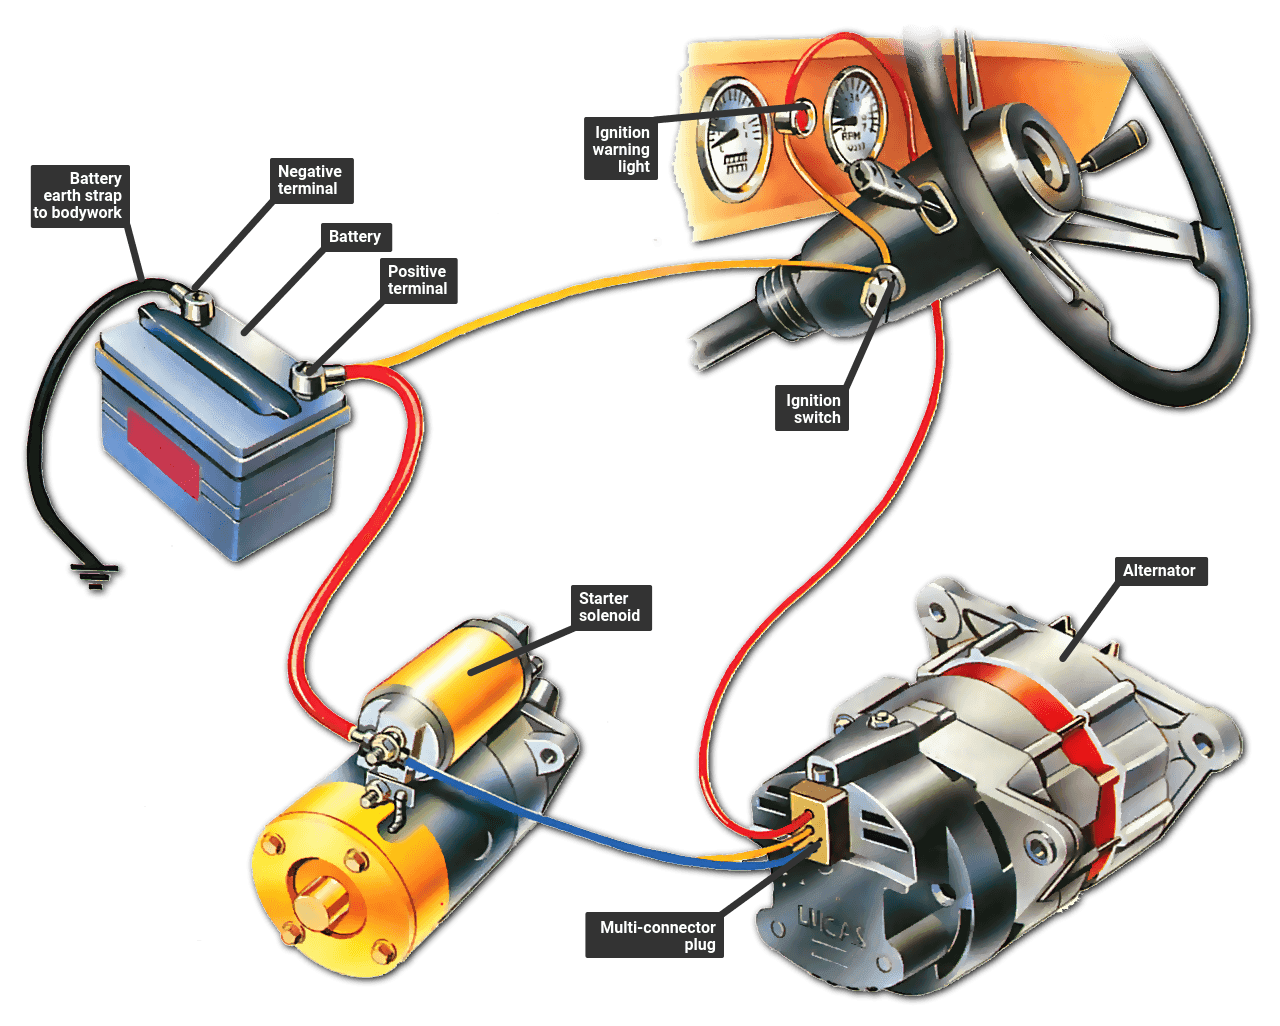 Troubleshooting The Ignition Warning Light How A Car Works 69 Vw Generator Wiring Diagram